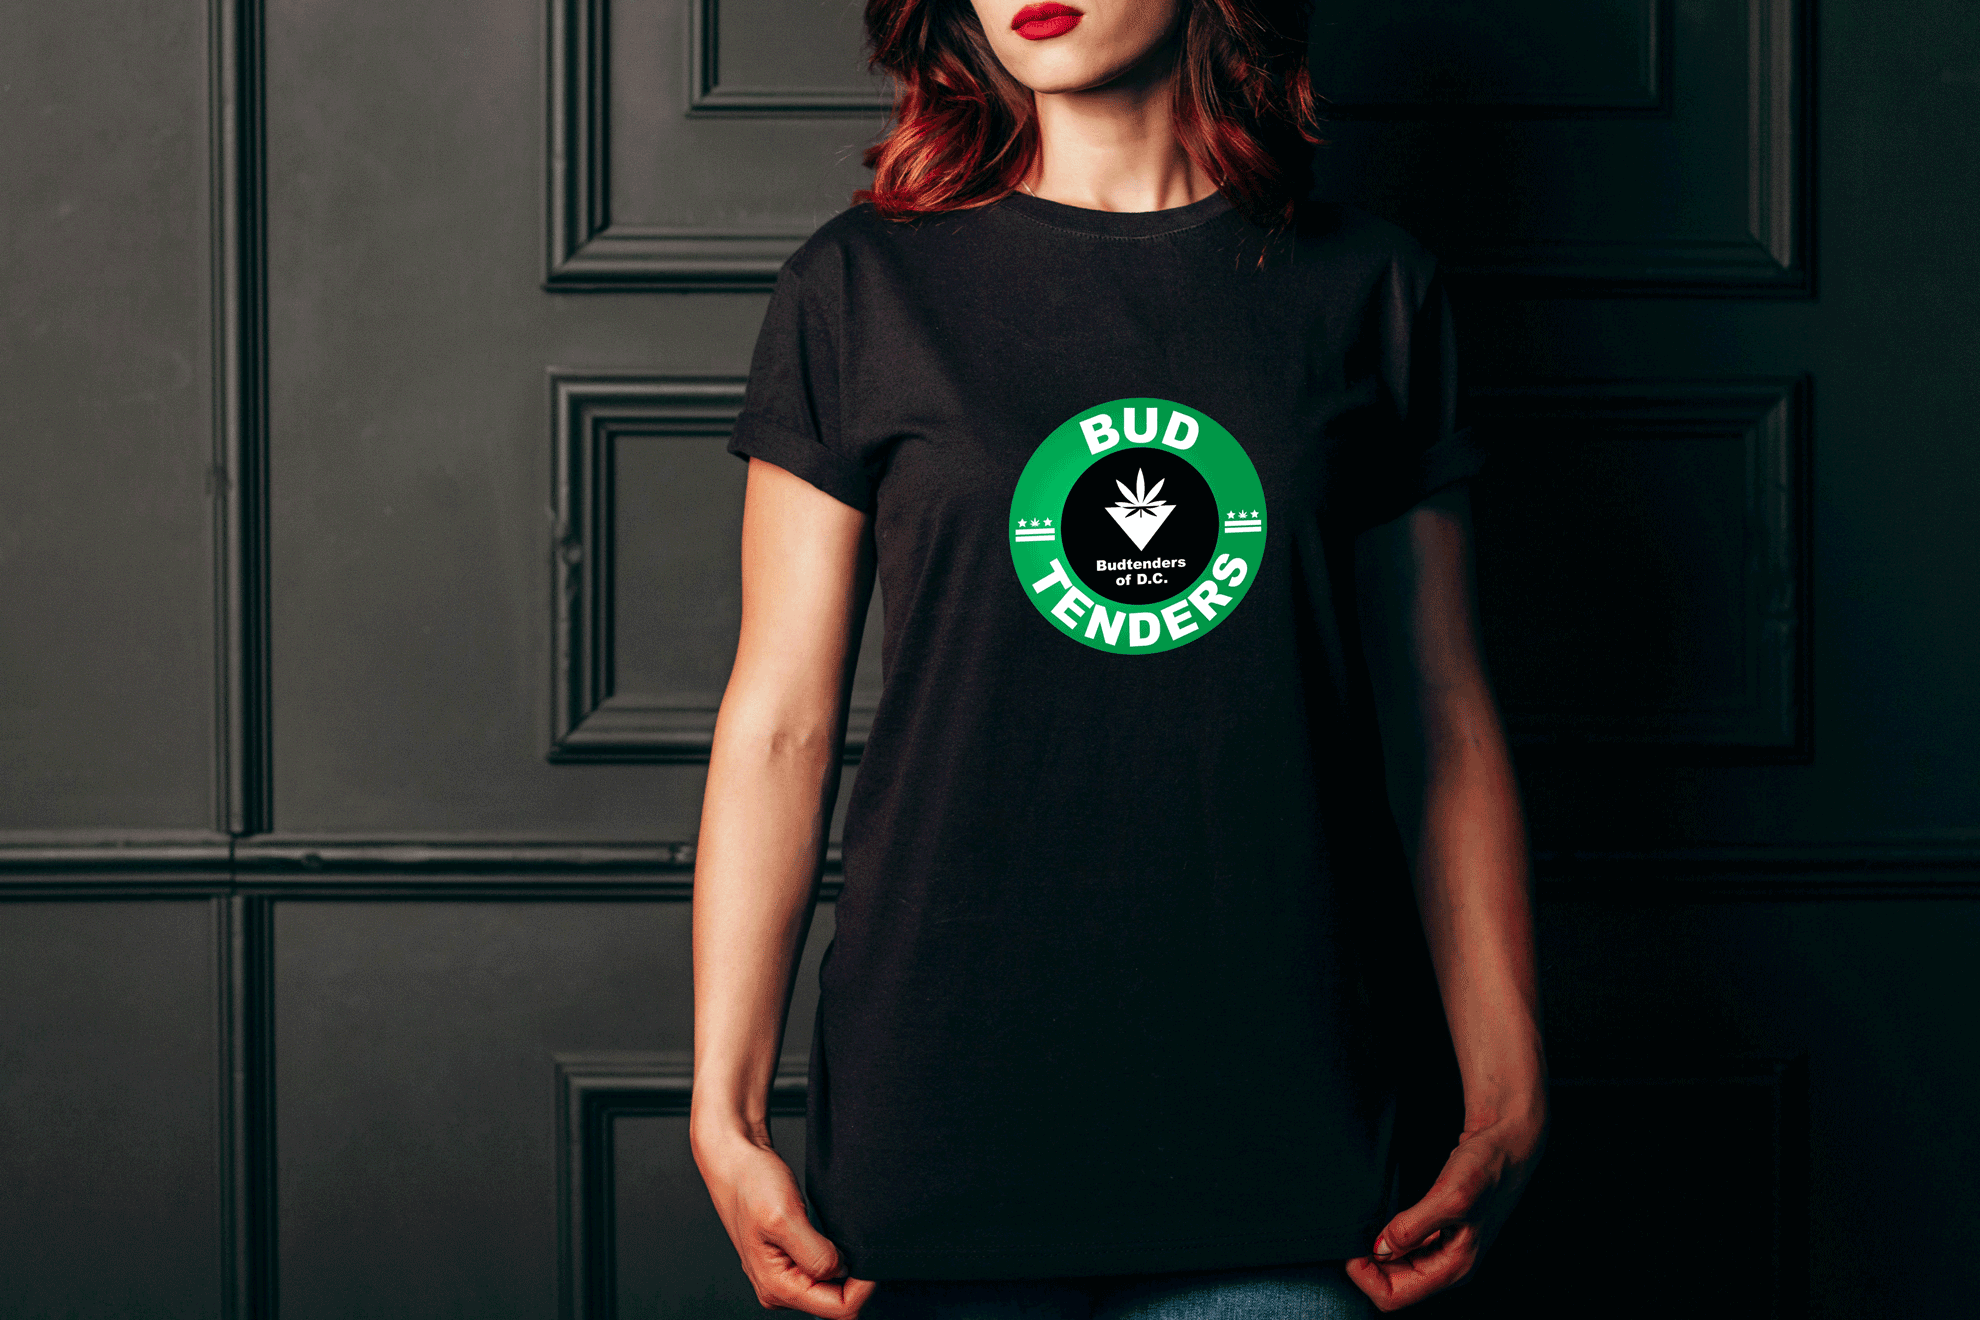 budtenders of dc background home page woman red lipstick logo on shirt